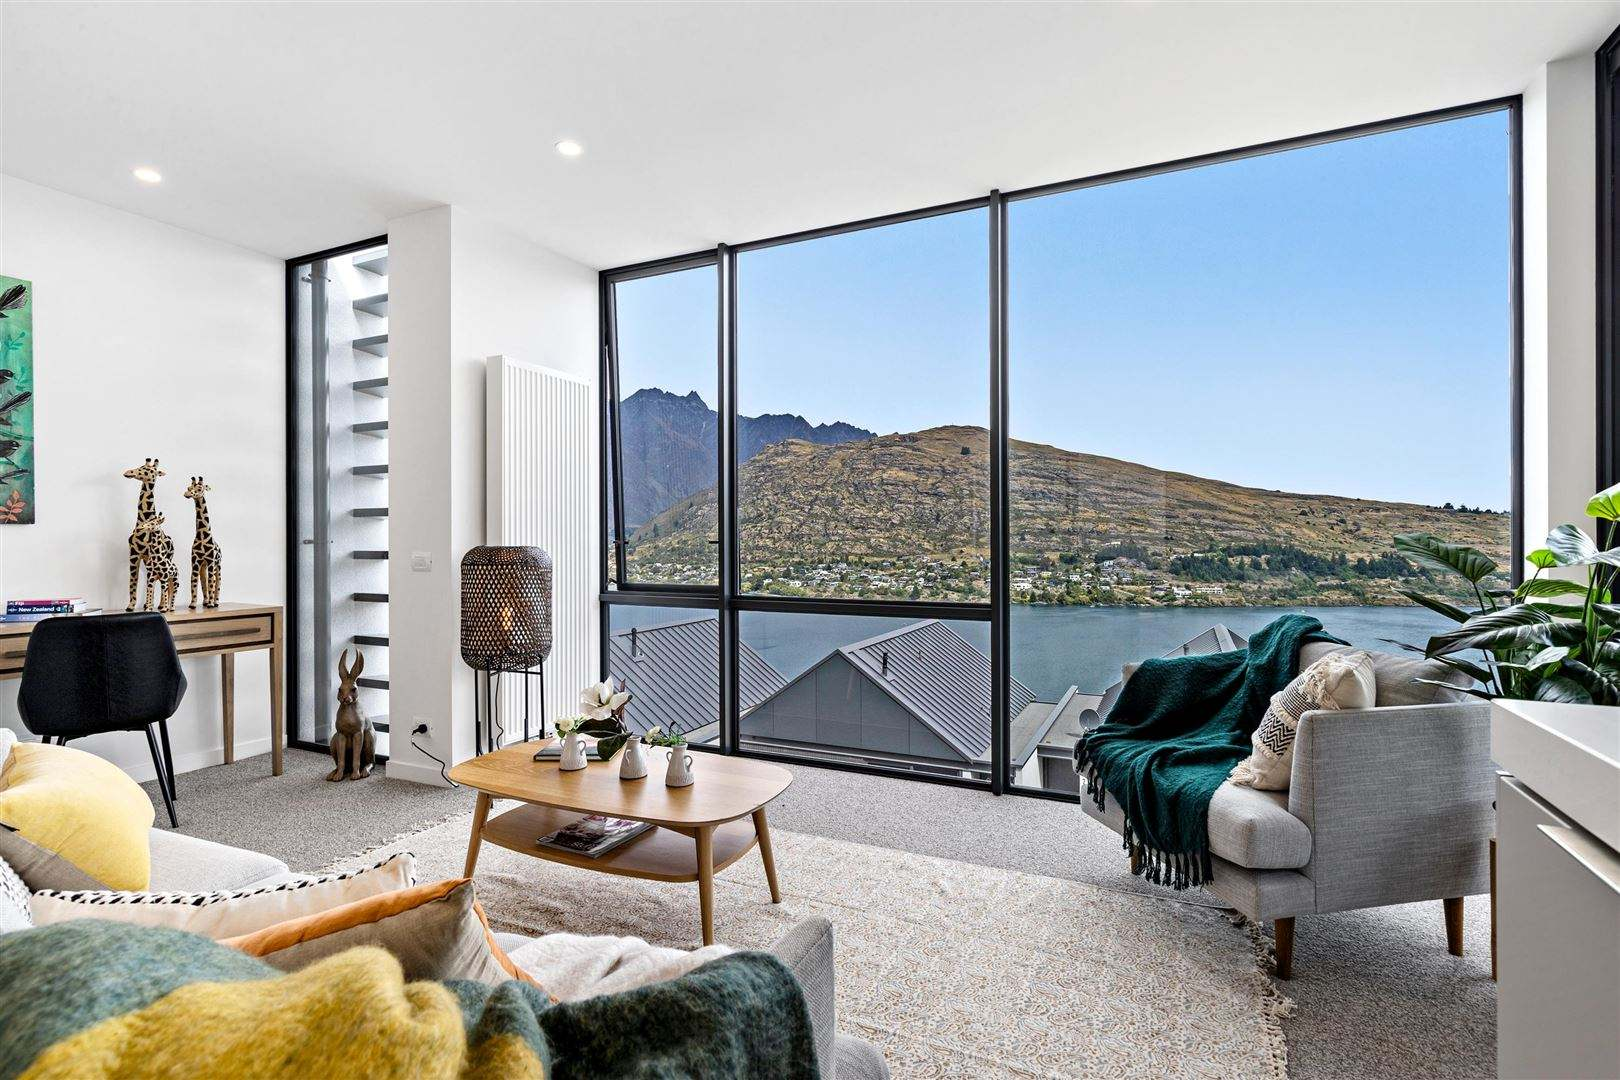 Queenstown 3房 Visitor Accommodation 365 days- Investment Opportunity..